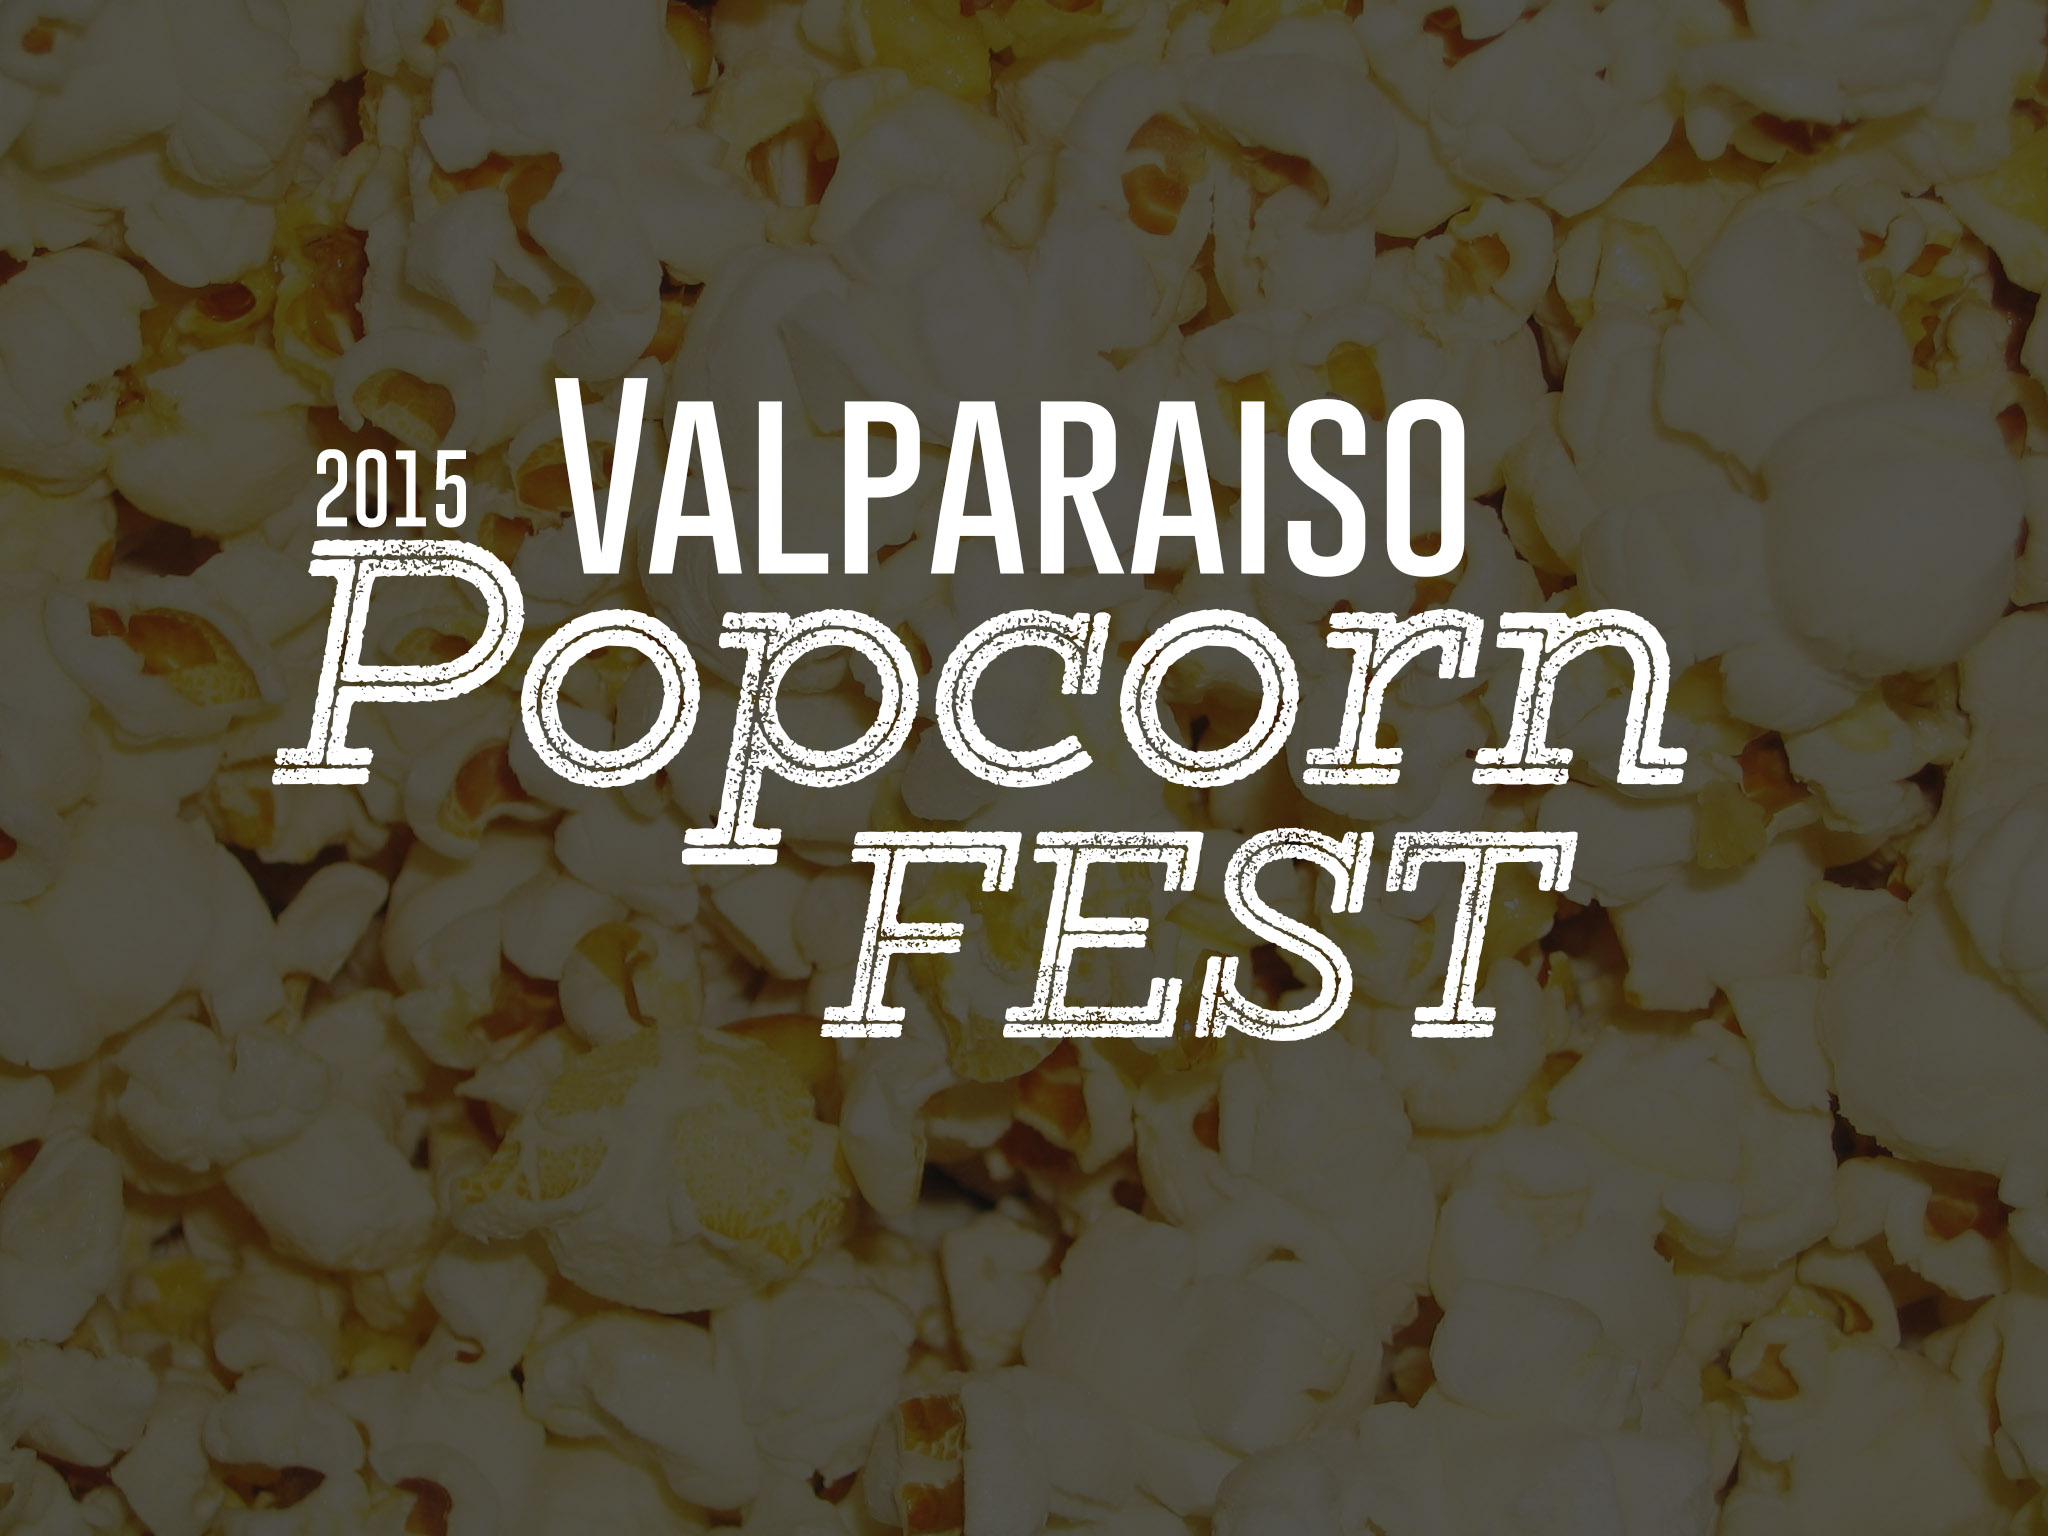 Valparaiso Popcorn Festival This Saturday!